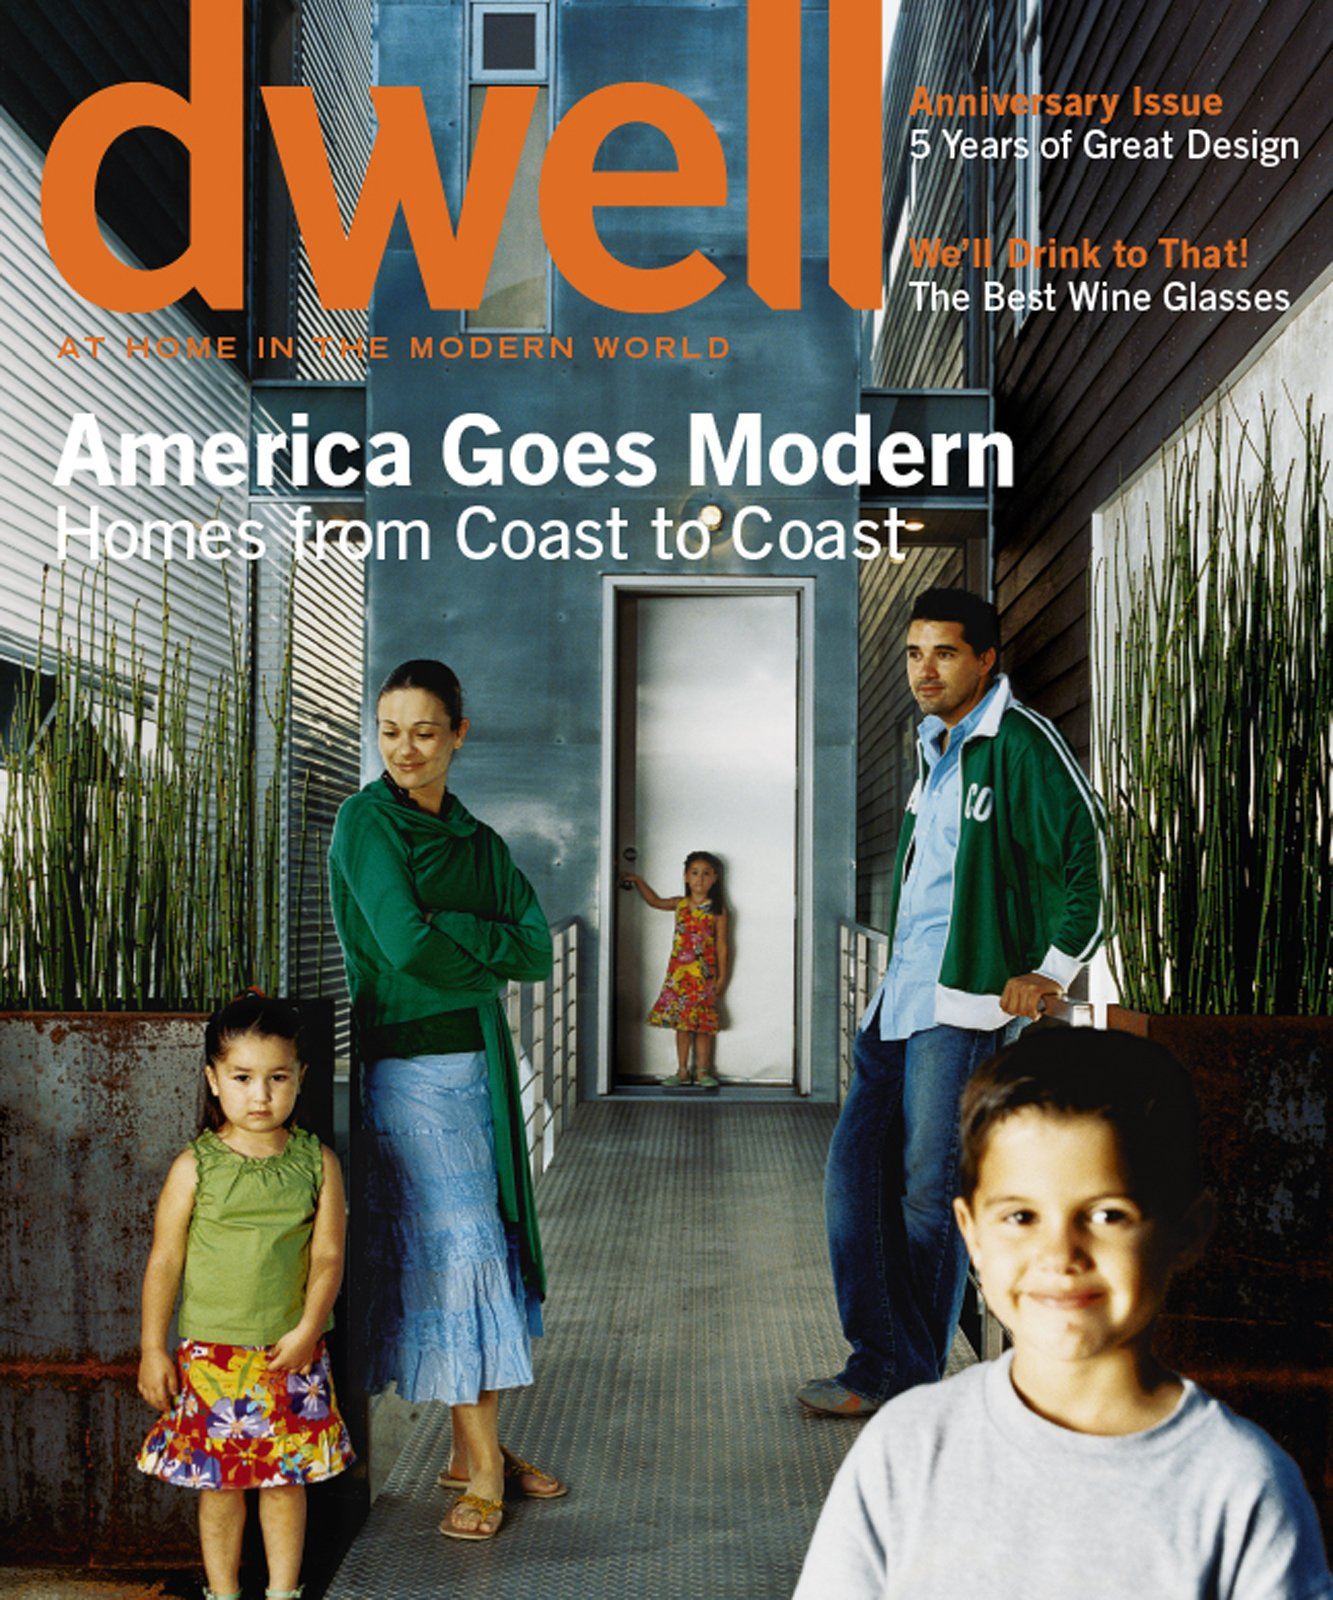 AMERICA GOES MODERN  Homes from Coast to Coast  October/November 2005, Vol. 06 Issue 01.  Dwell October/November 2005, Vol. 06 Issue 01: America Goes Modern by Dwell